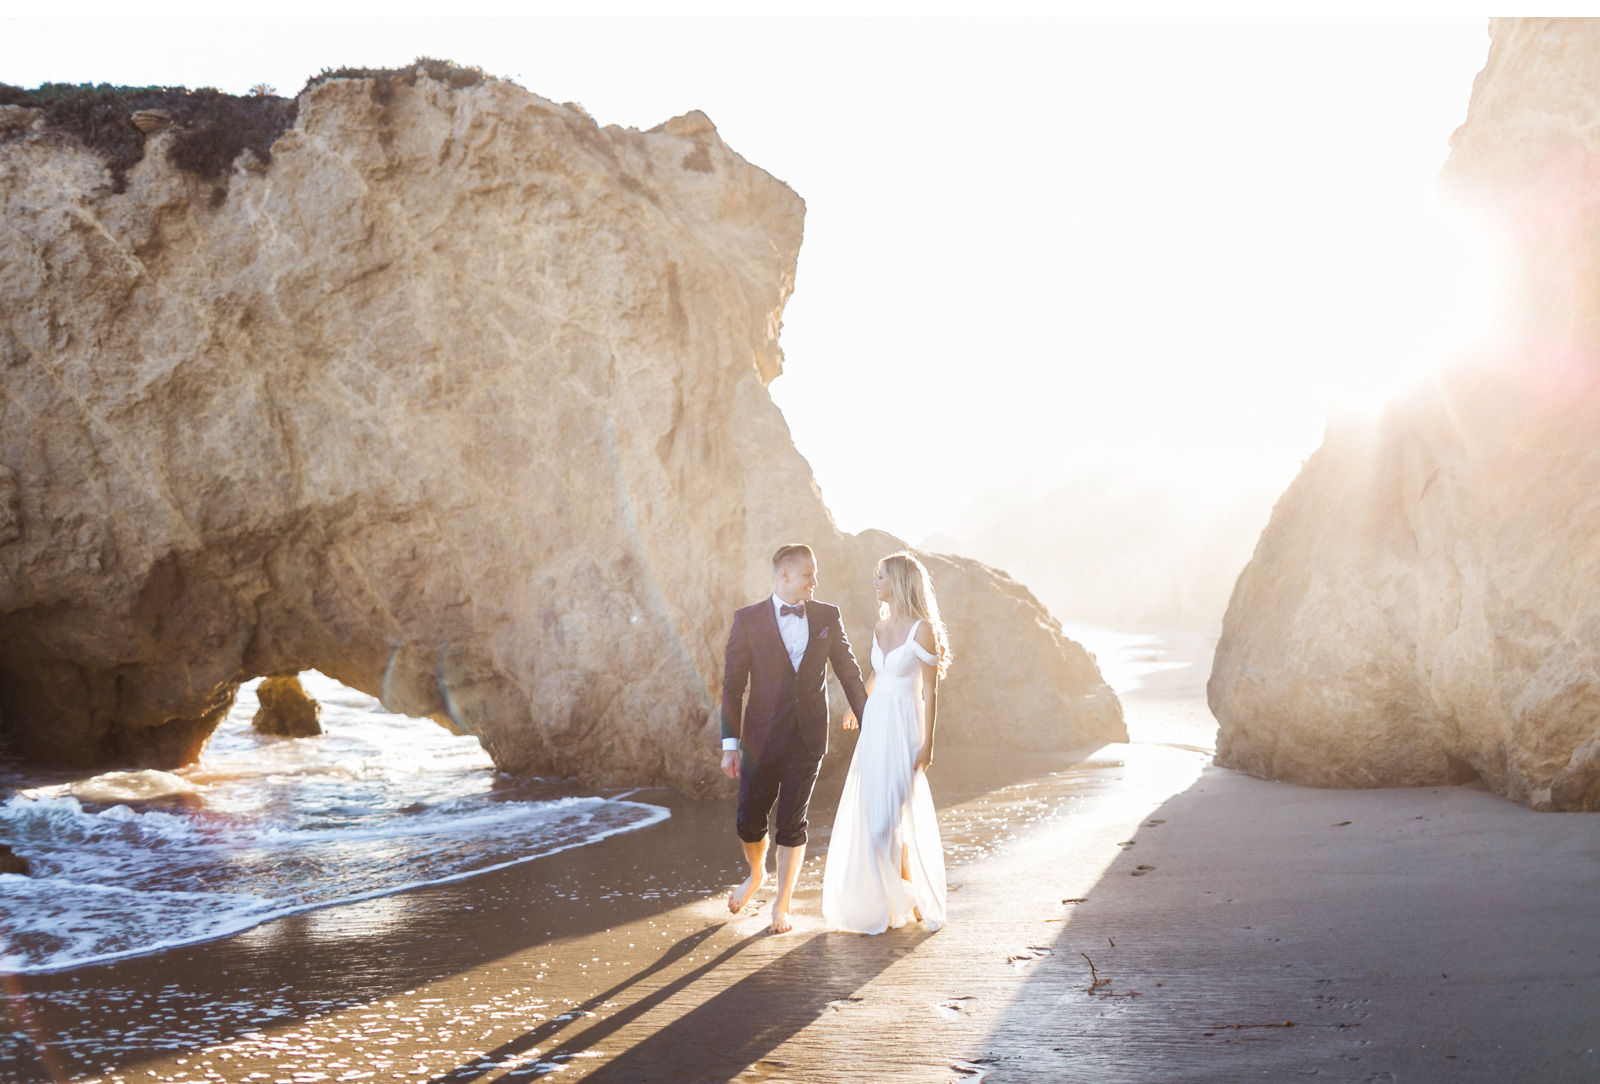 Style-Me-Pretty-Malibu-Wedding-Natalie-Schutt-Photography_09.jpg